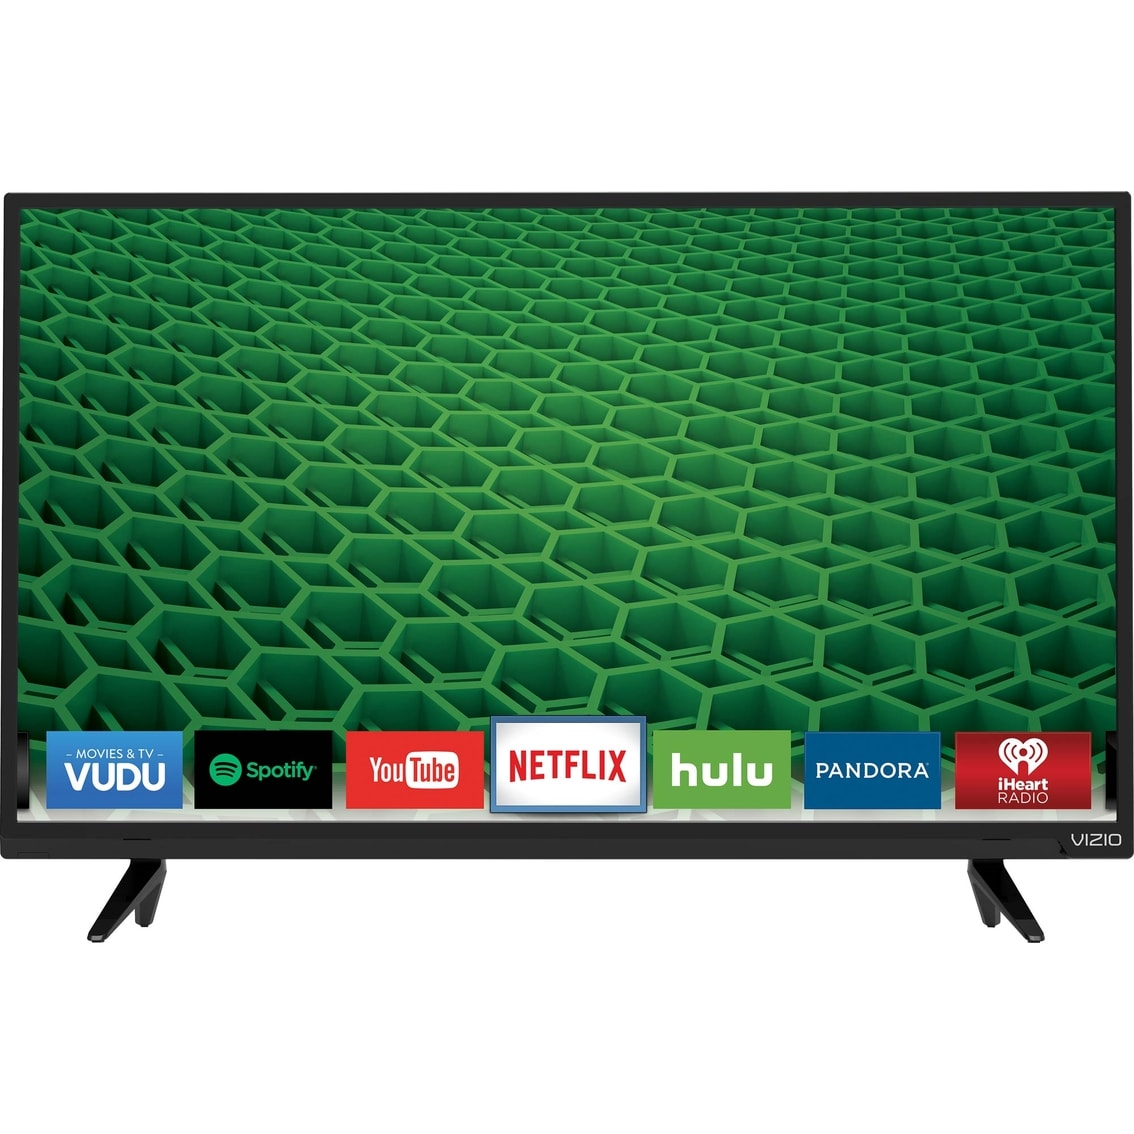 Vizio D32h-D1 D-Series Class 720P 60HZ Black 32-inch Full-array LED Smart TV